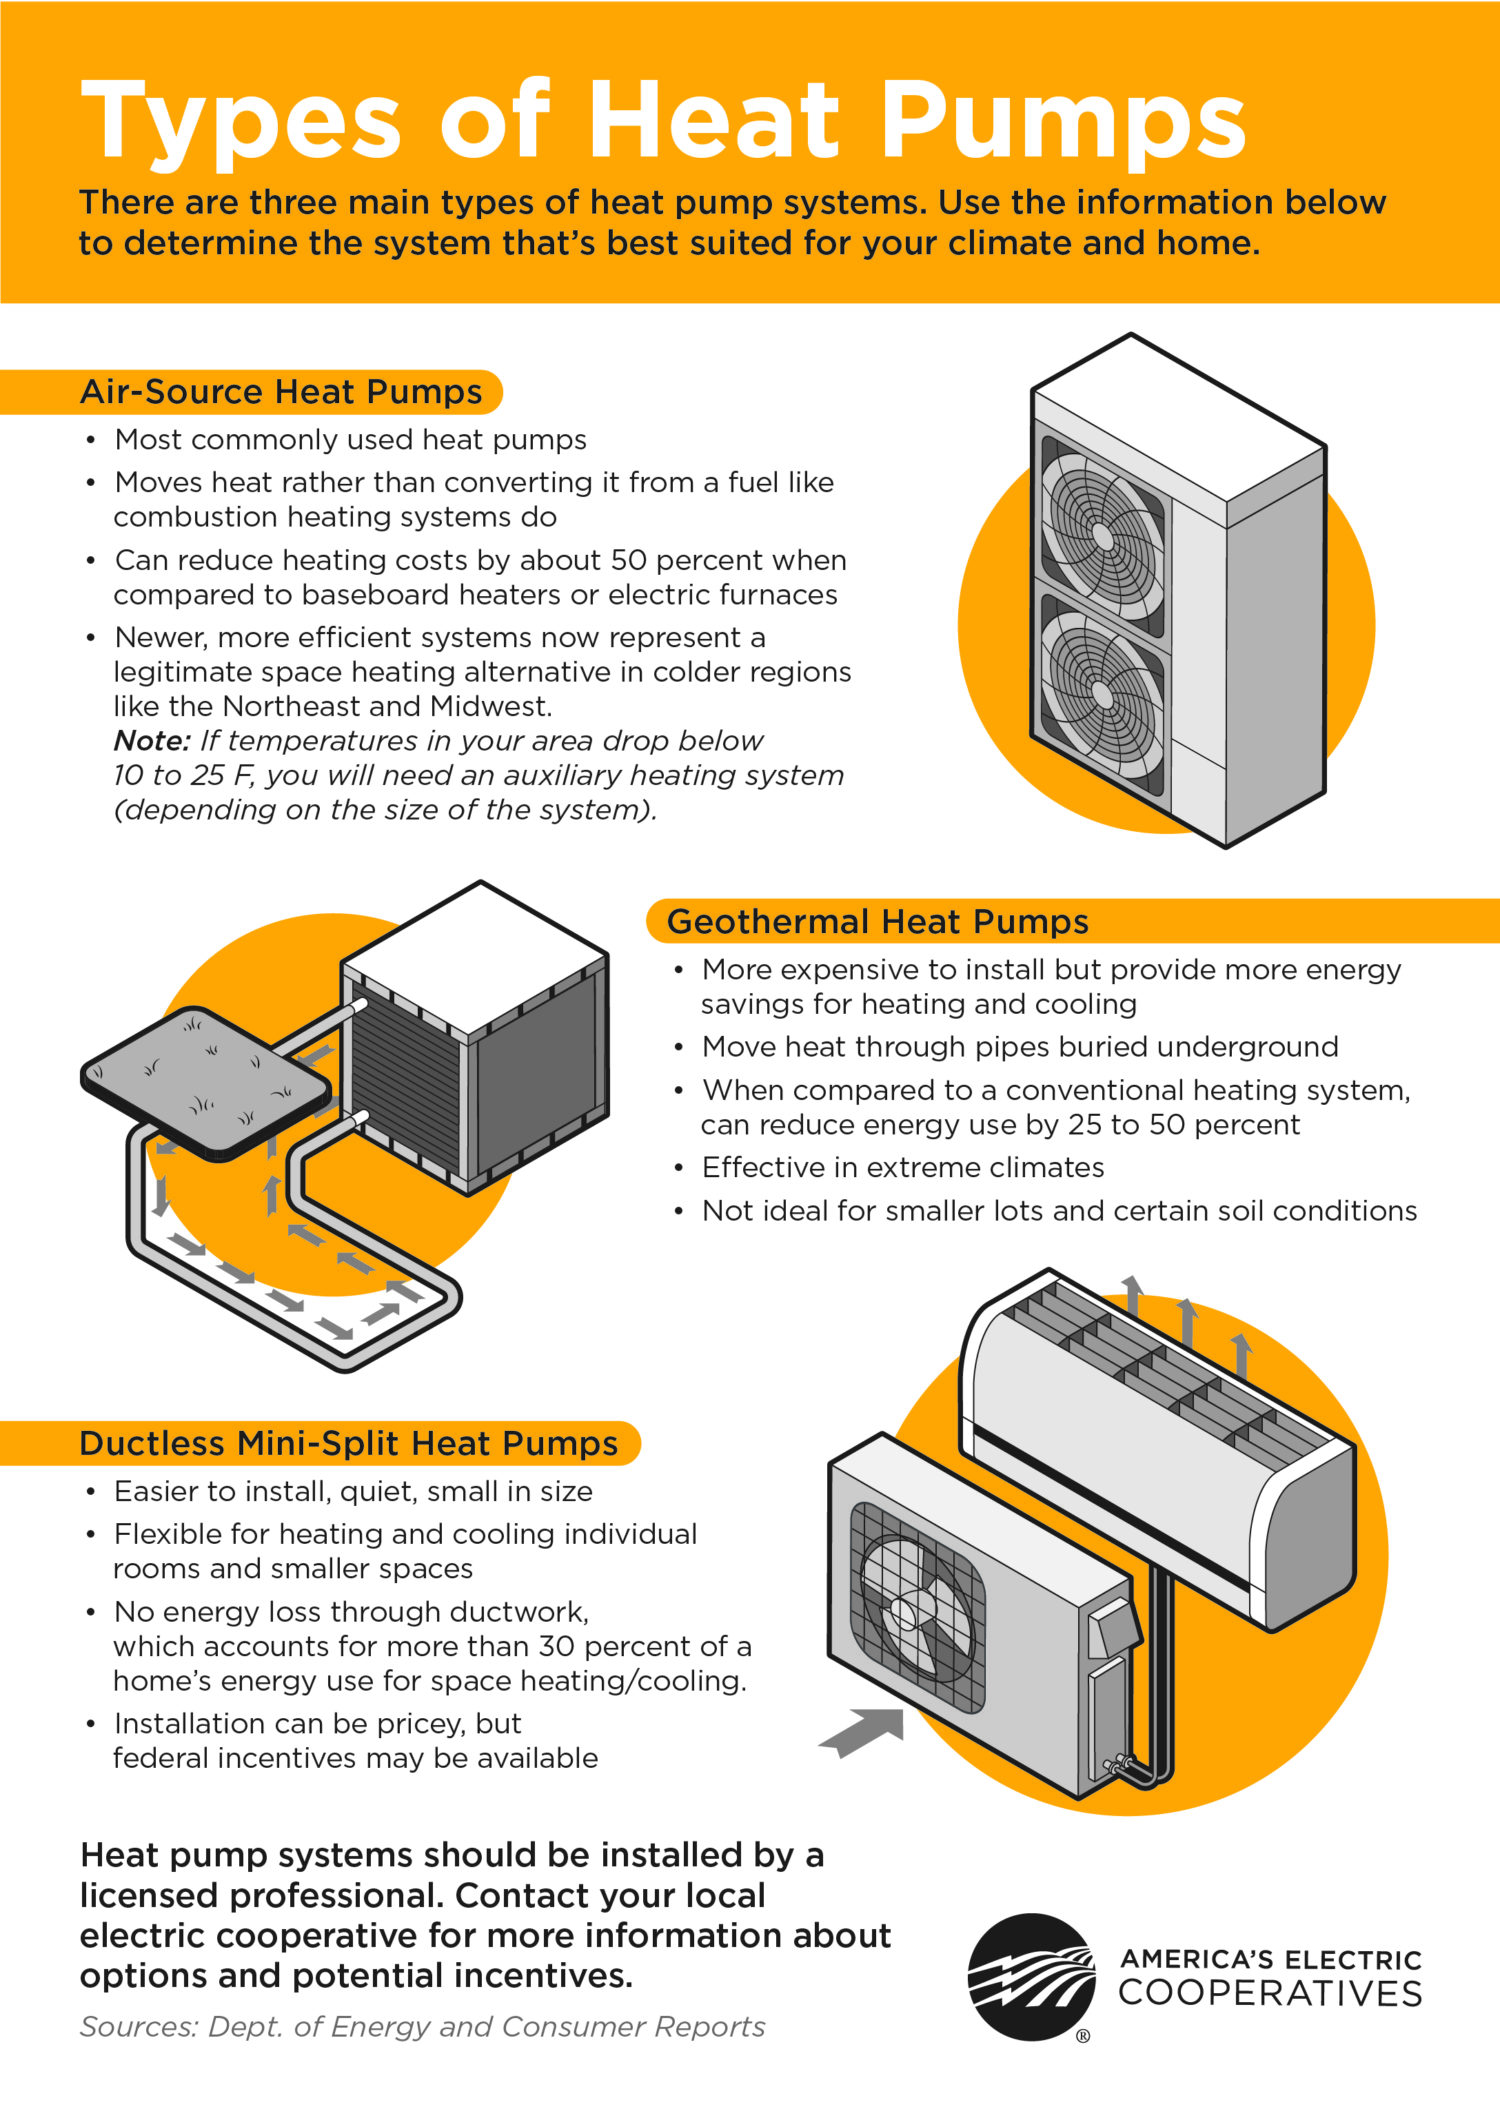 hight resolution of heat pumps are cool and warm too what type is best for you air source geothermal or ductless mini split